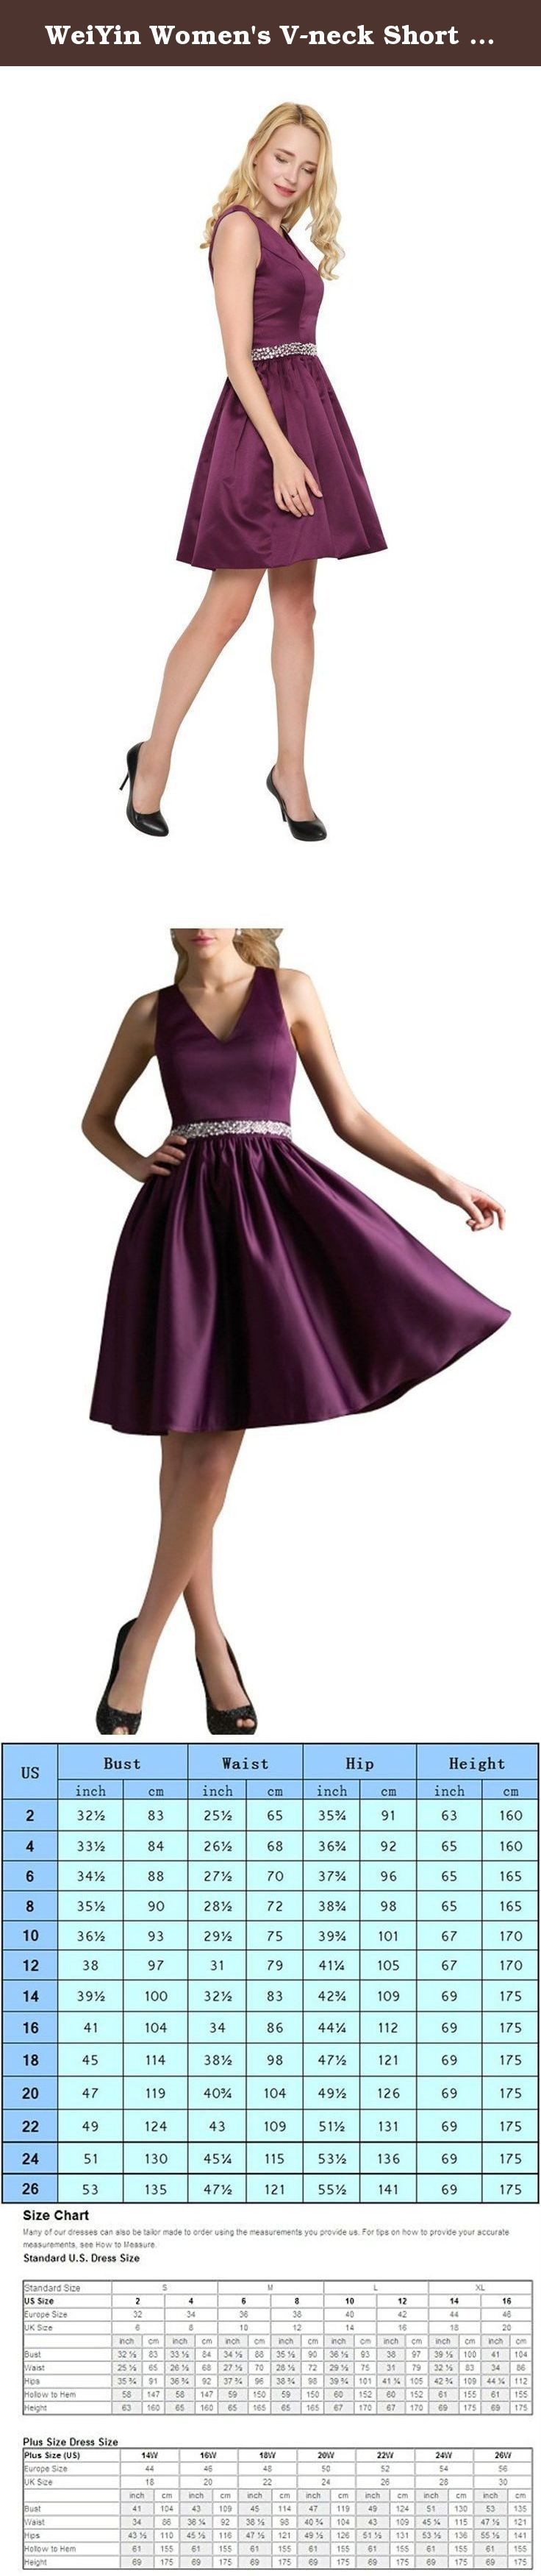 WeiYin Women's V-neck Short Cocktail Dress Bridesmaid Dresses Plum US 16. Women's V-neck short dress Bridesmaid Dresses Cocktail Dresses Cocktail Dresses.